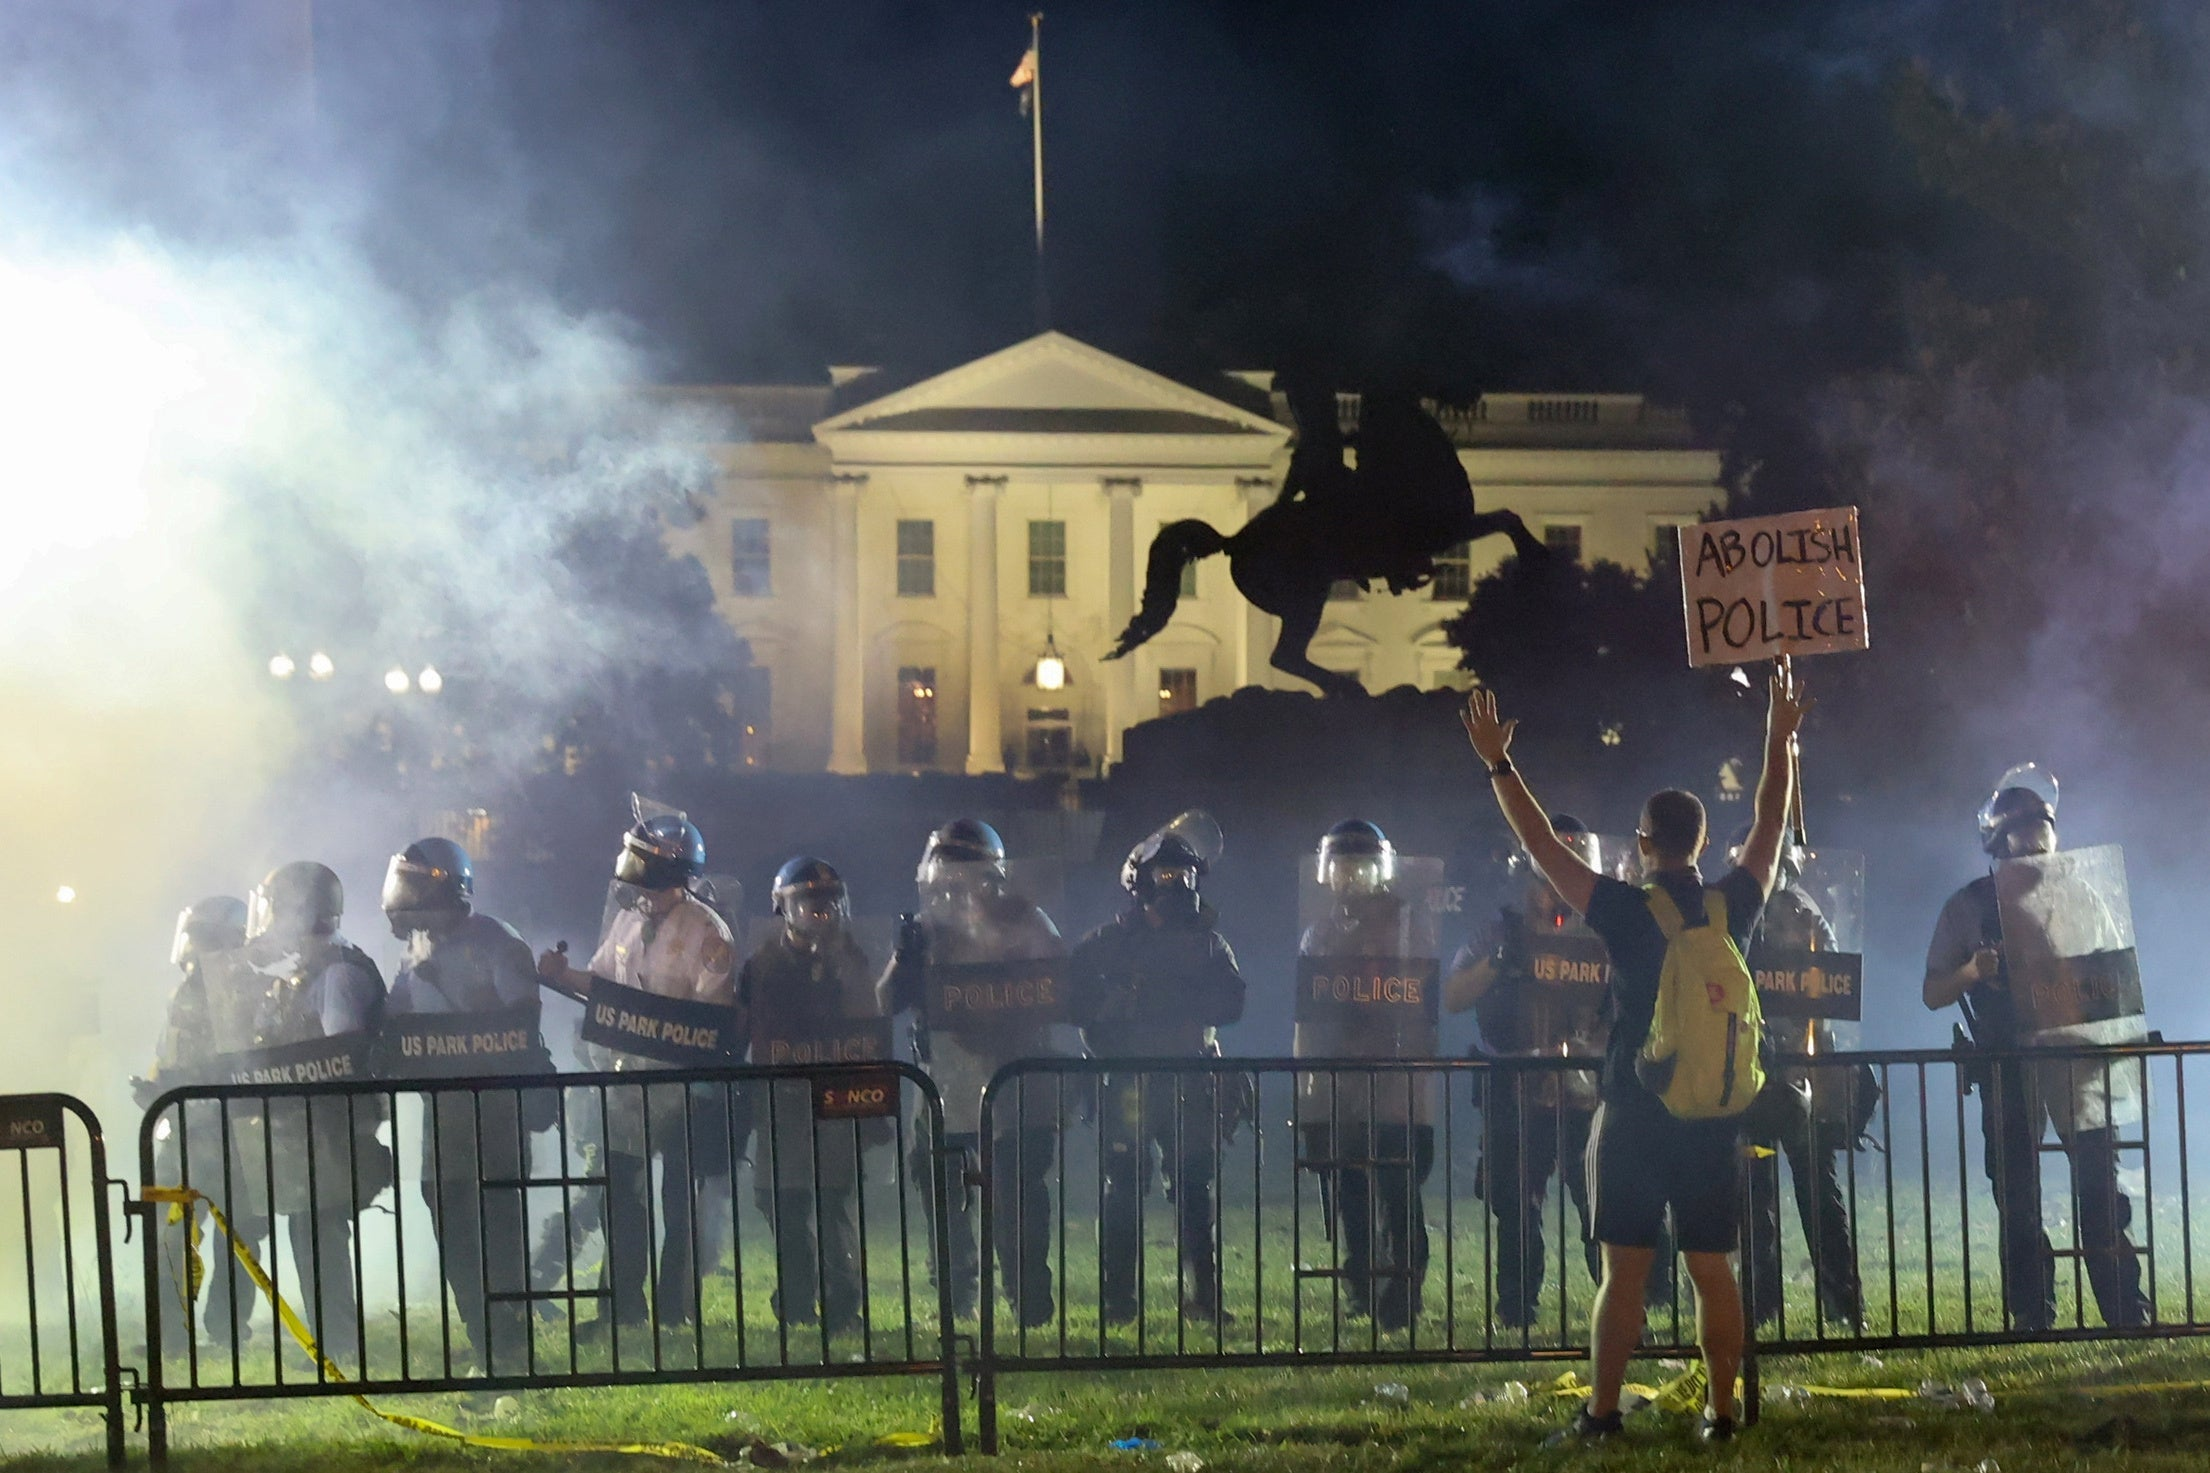 Trump was rushed to secret underground bunker during George Floyd protests outside White House - The Independent